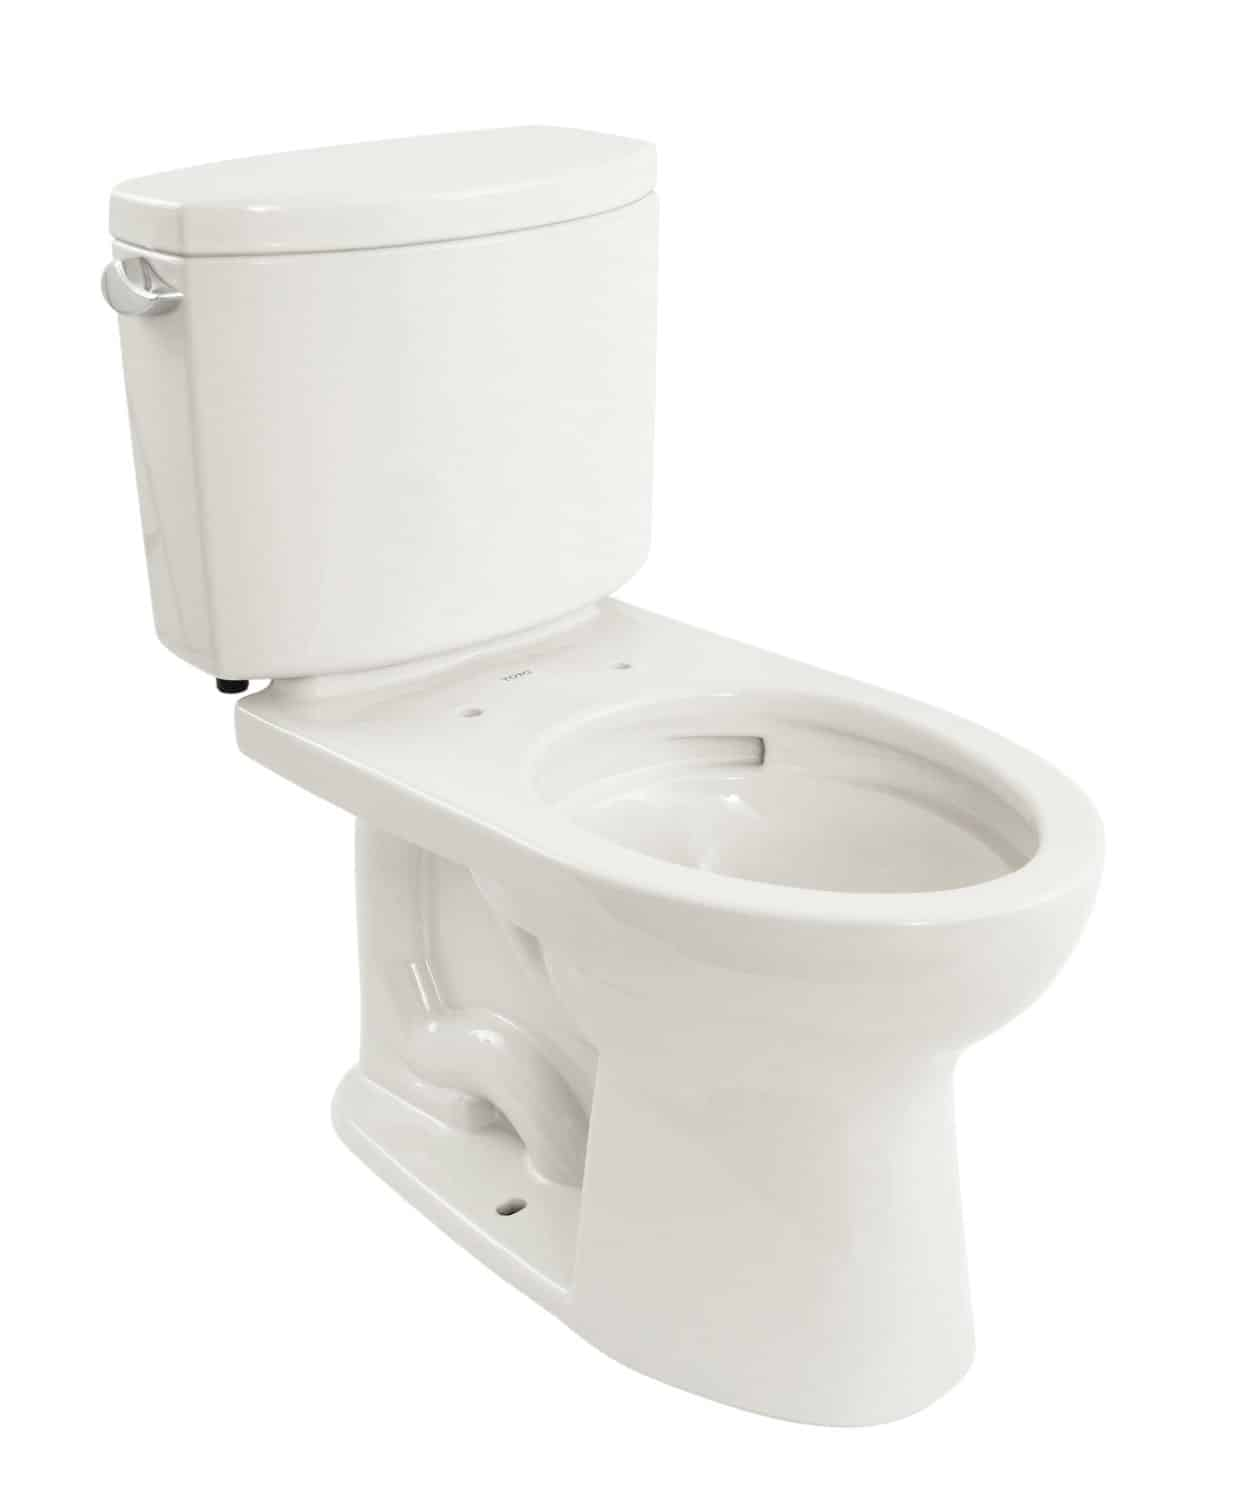 Best toilet on the market reviews - Toto Drake Ii